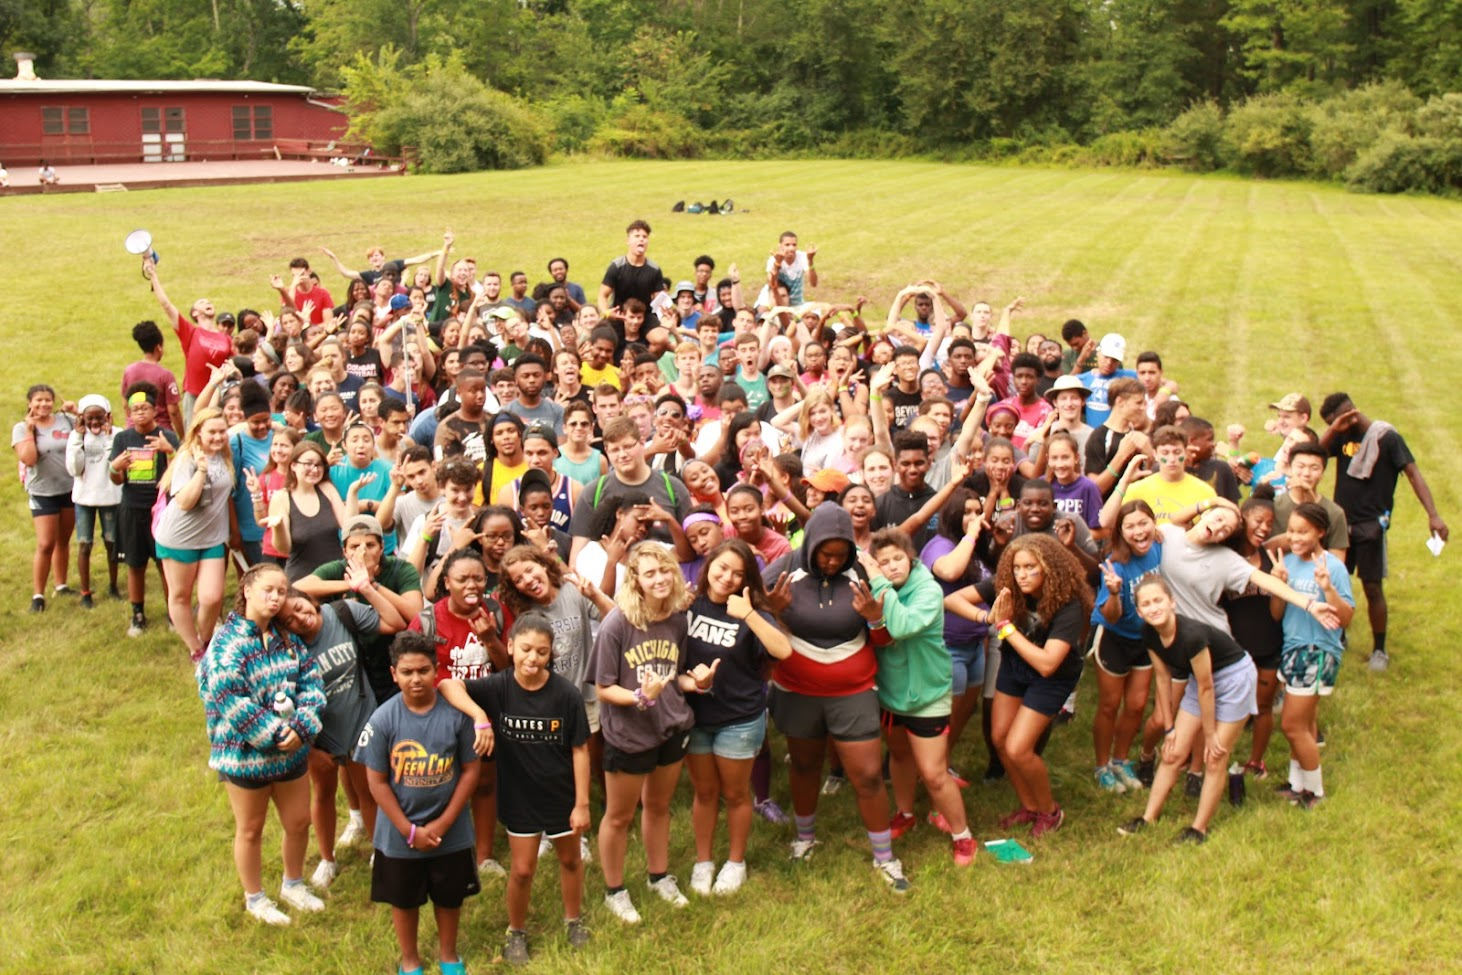 Campers at Teen Camp 2 2018